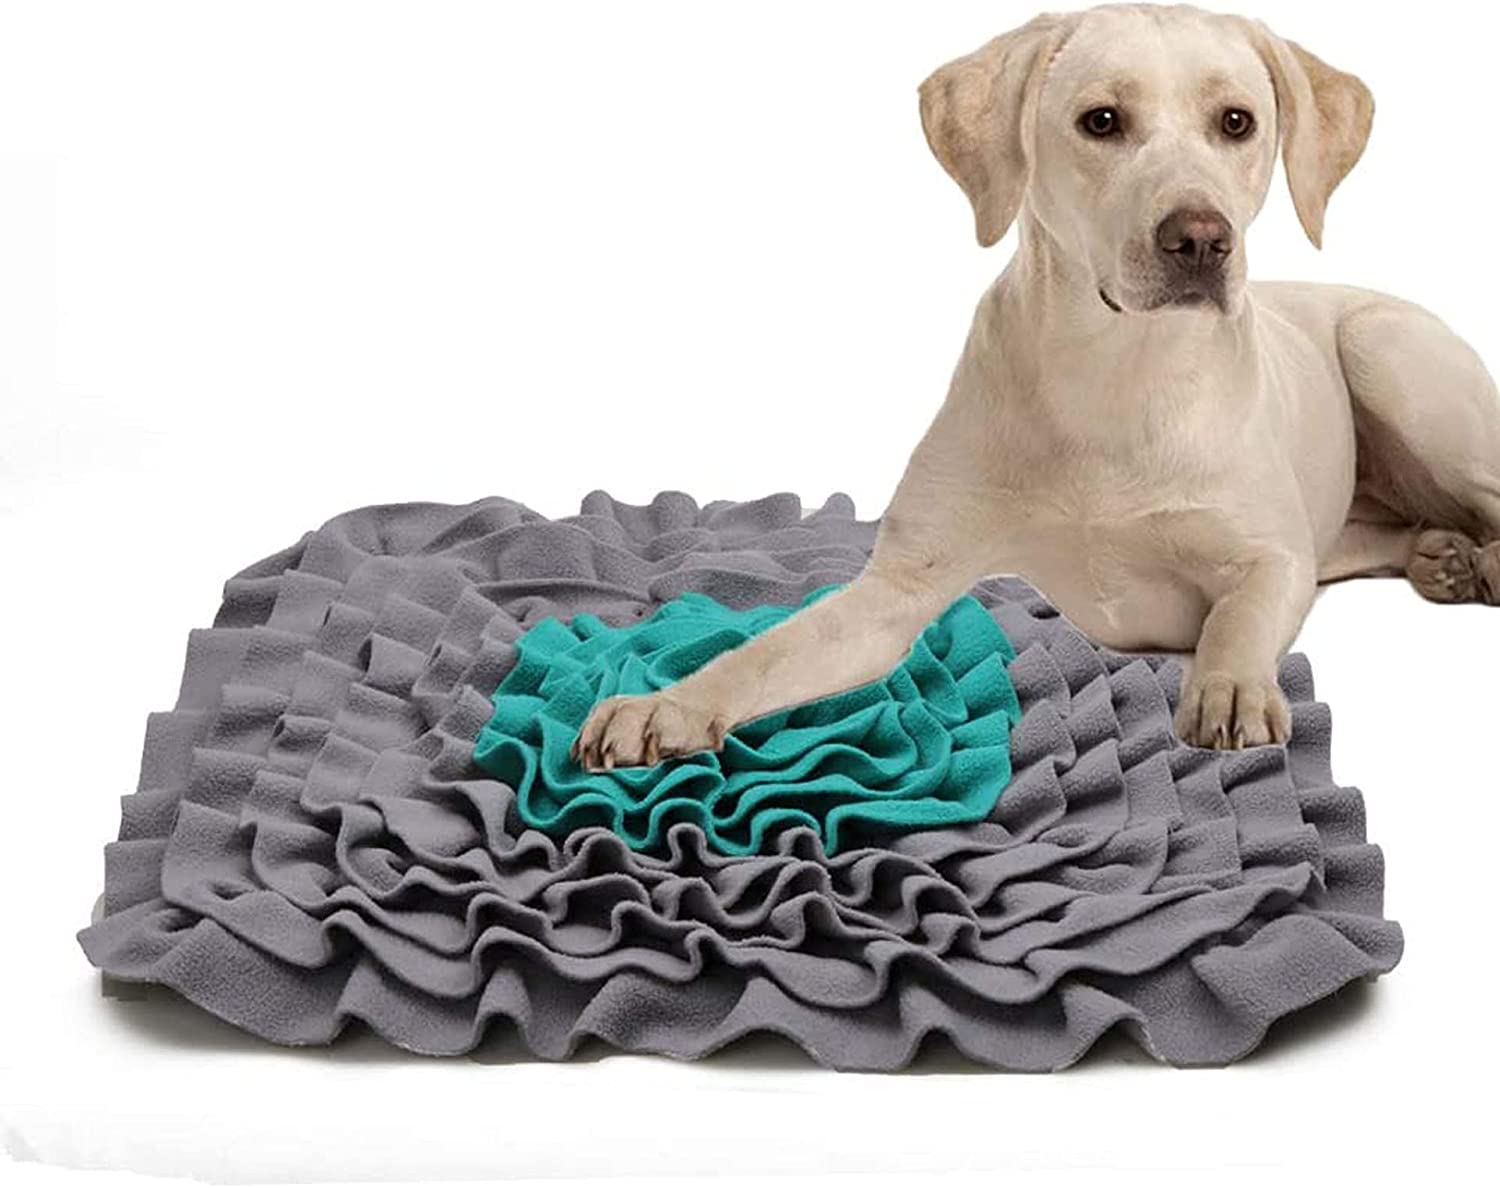 Cauplse Snuffle Mat for Dogs Daily bargain sale Sniff Fo Feeding Slow Discount is also underway